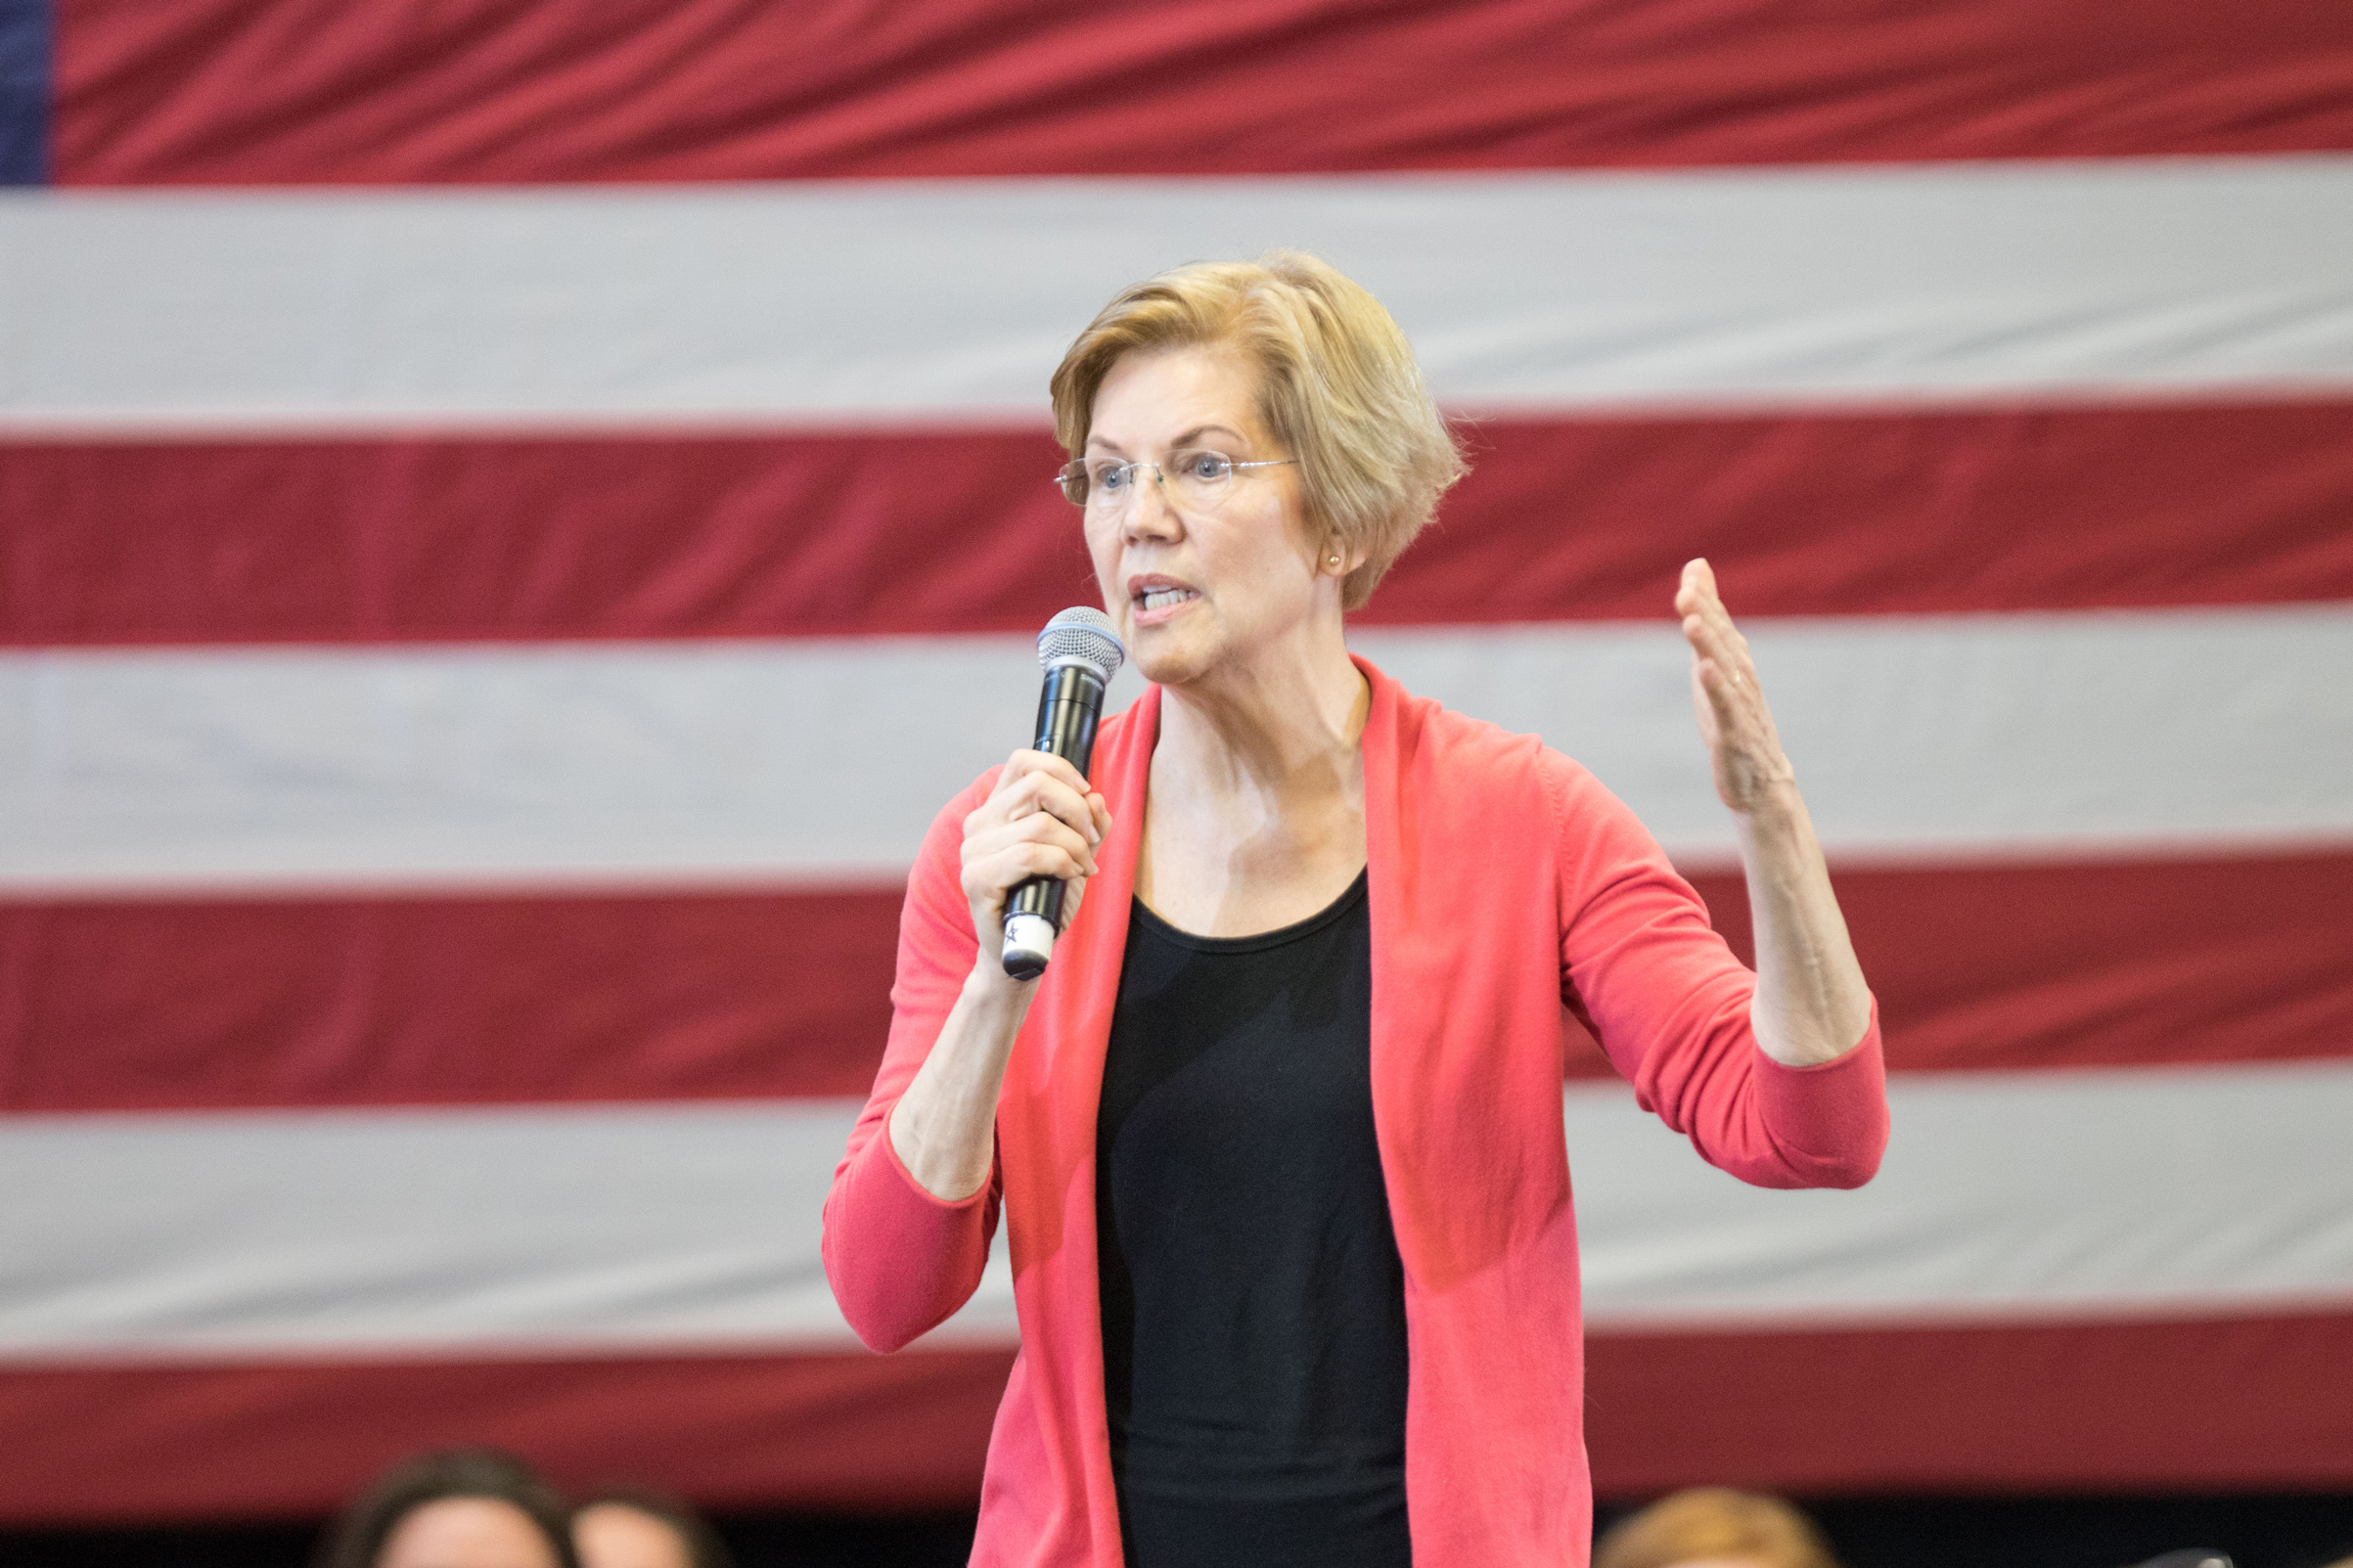 Sen. Elizabeth Warren (D-MA), speaks during a New Hampshire organizing event for her 2020 presidential exploratory committee on Jan. 12, 2019 in Manchester, New Hampshire.